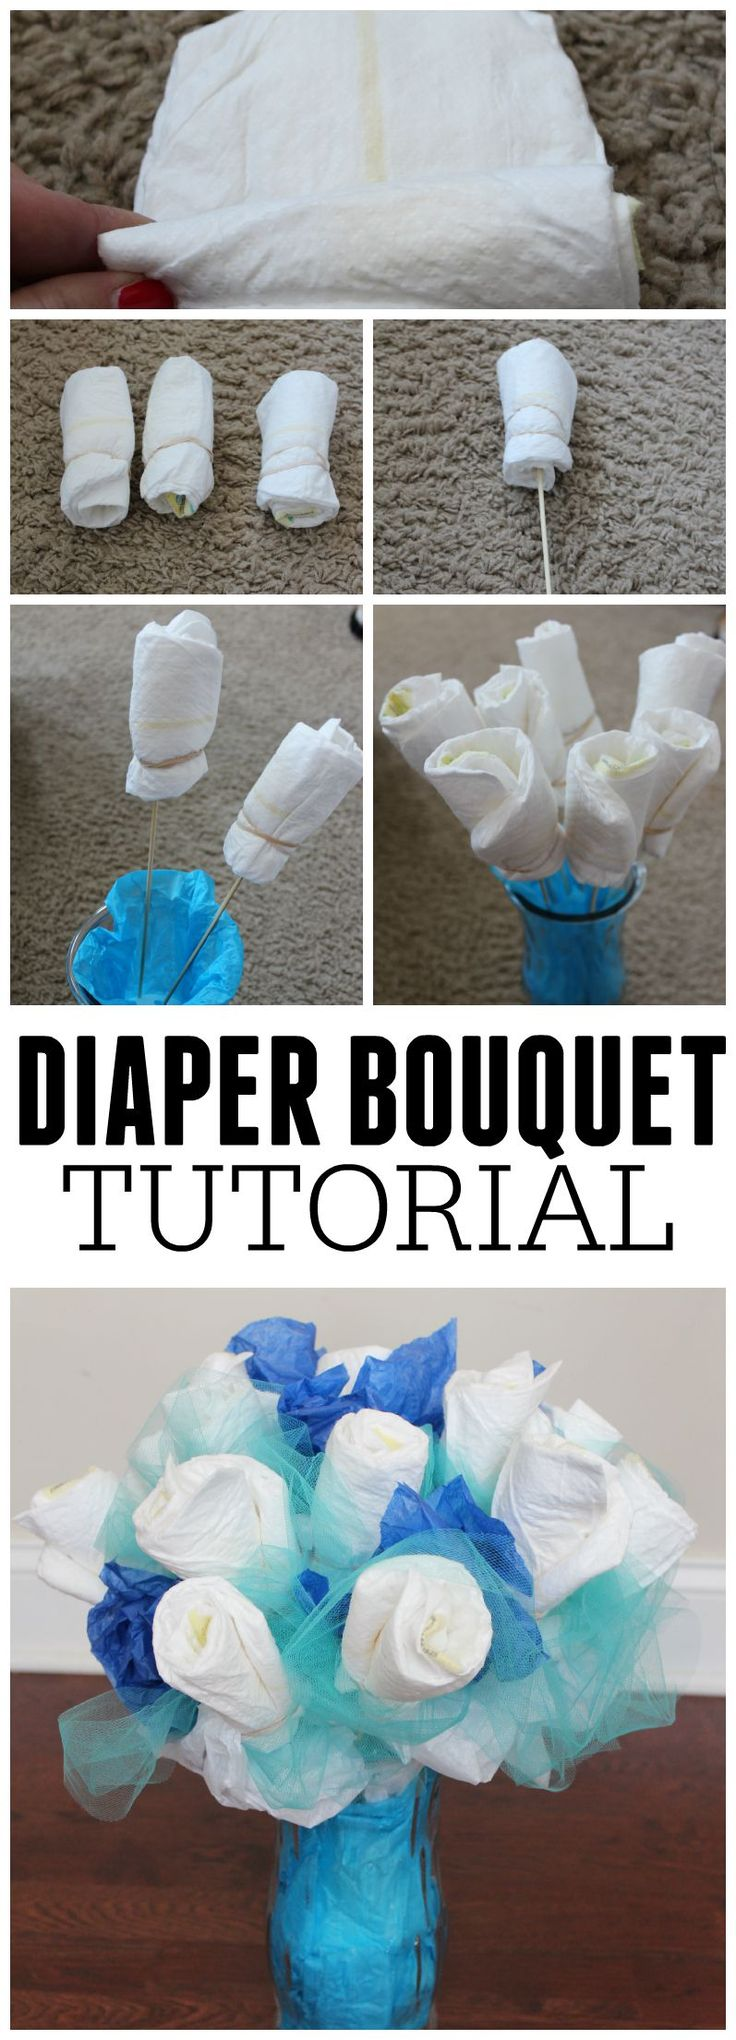 How To Make A Diaper Bouquet Picture Tutorial Diaper Showerboy Showerbaby